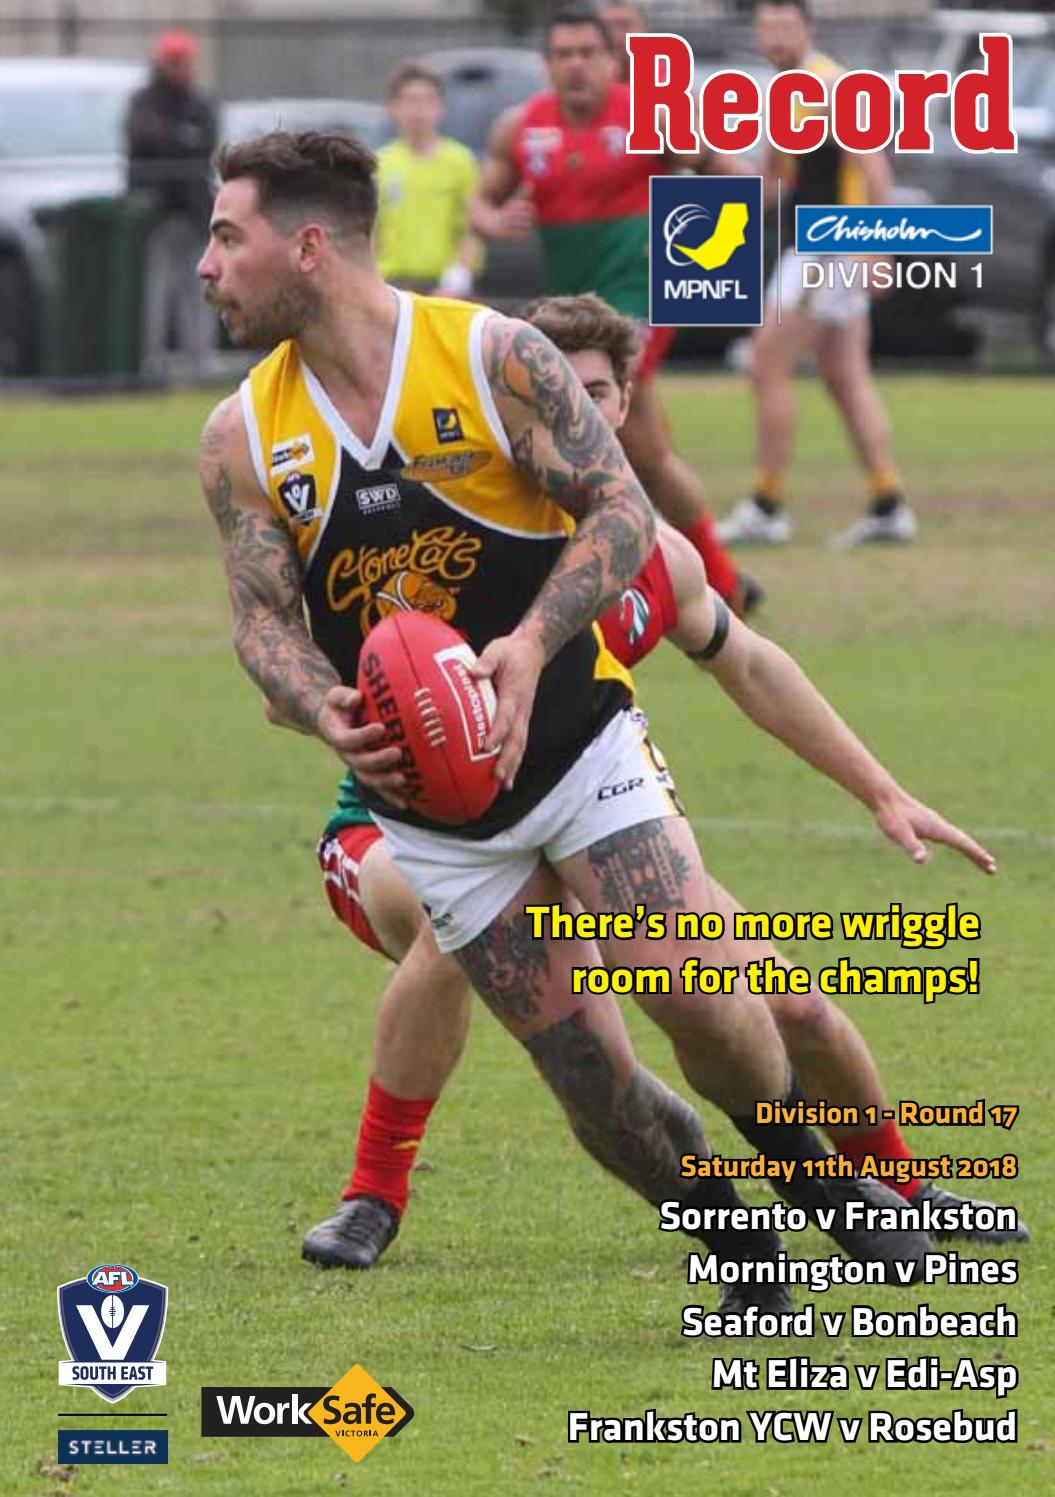 MPNFL Footy Record August 4 by AFL South East - issuu 4191677c0ee6